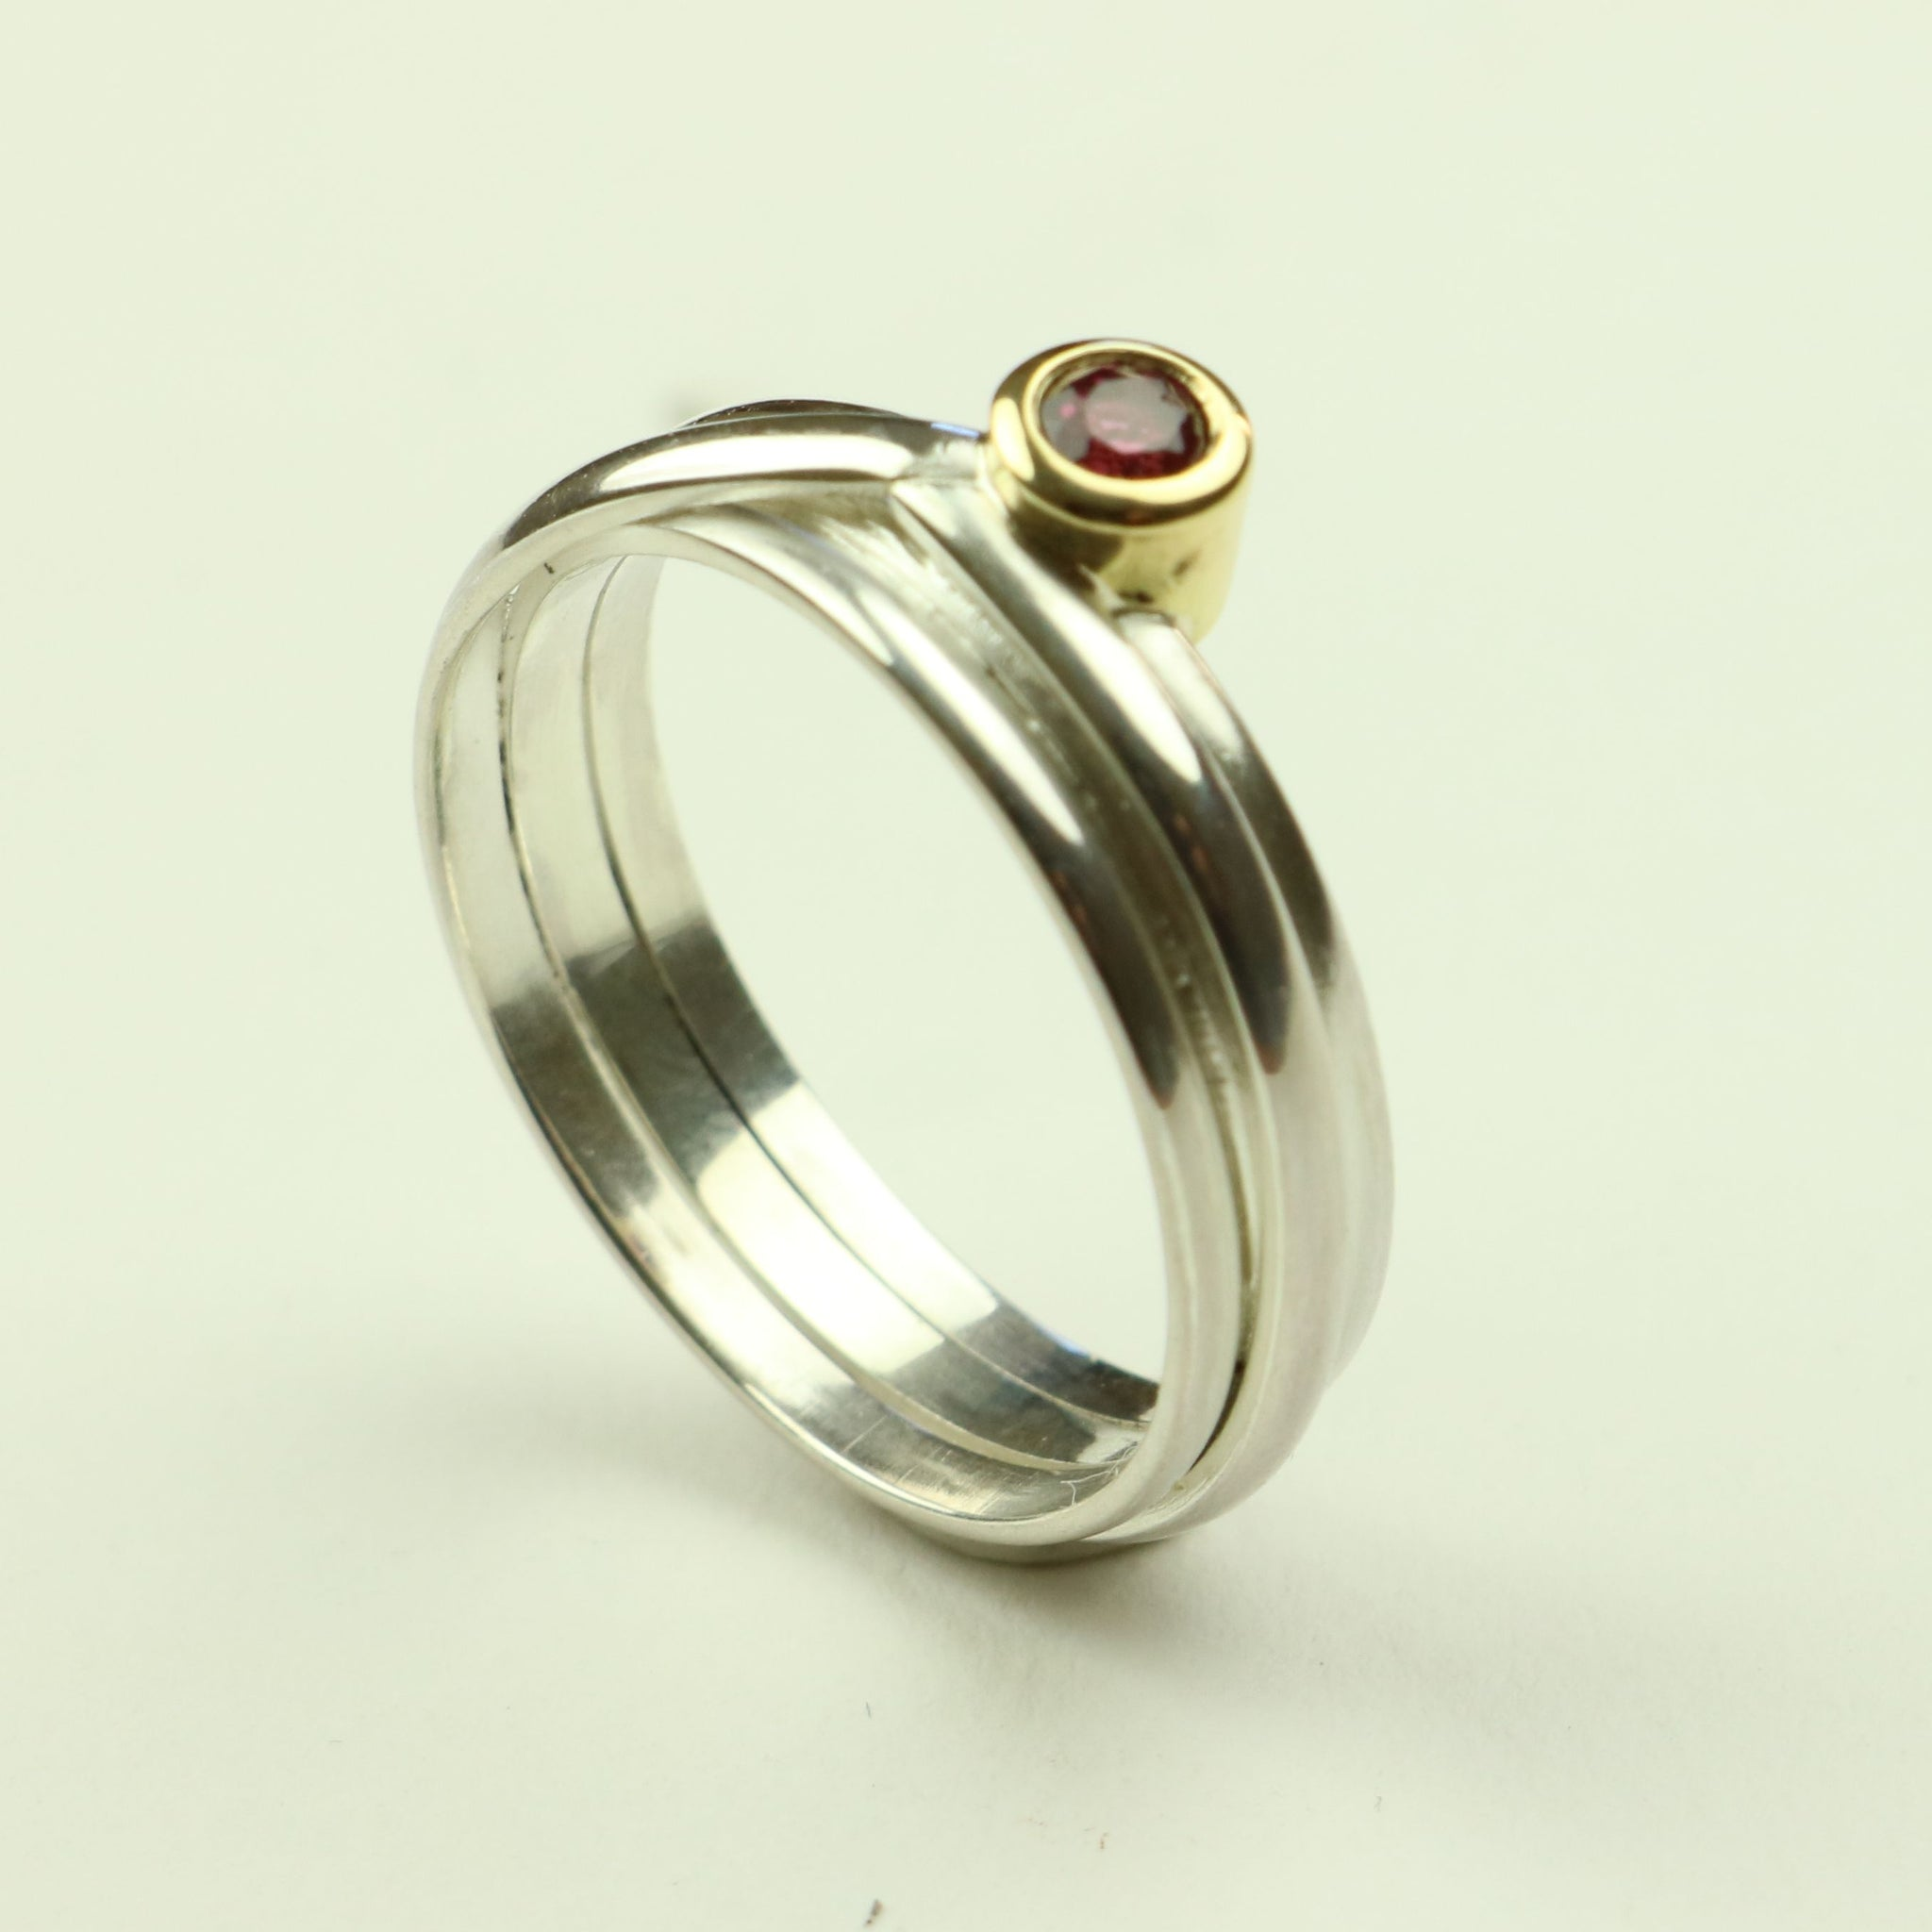 Wrap Ring in Silver and Gold with Ruby